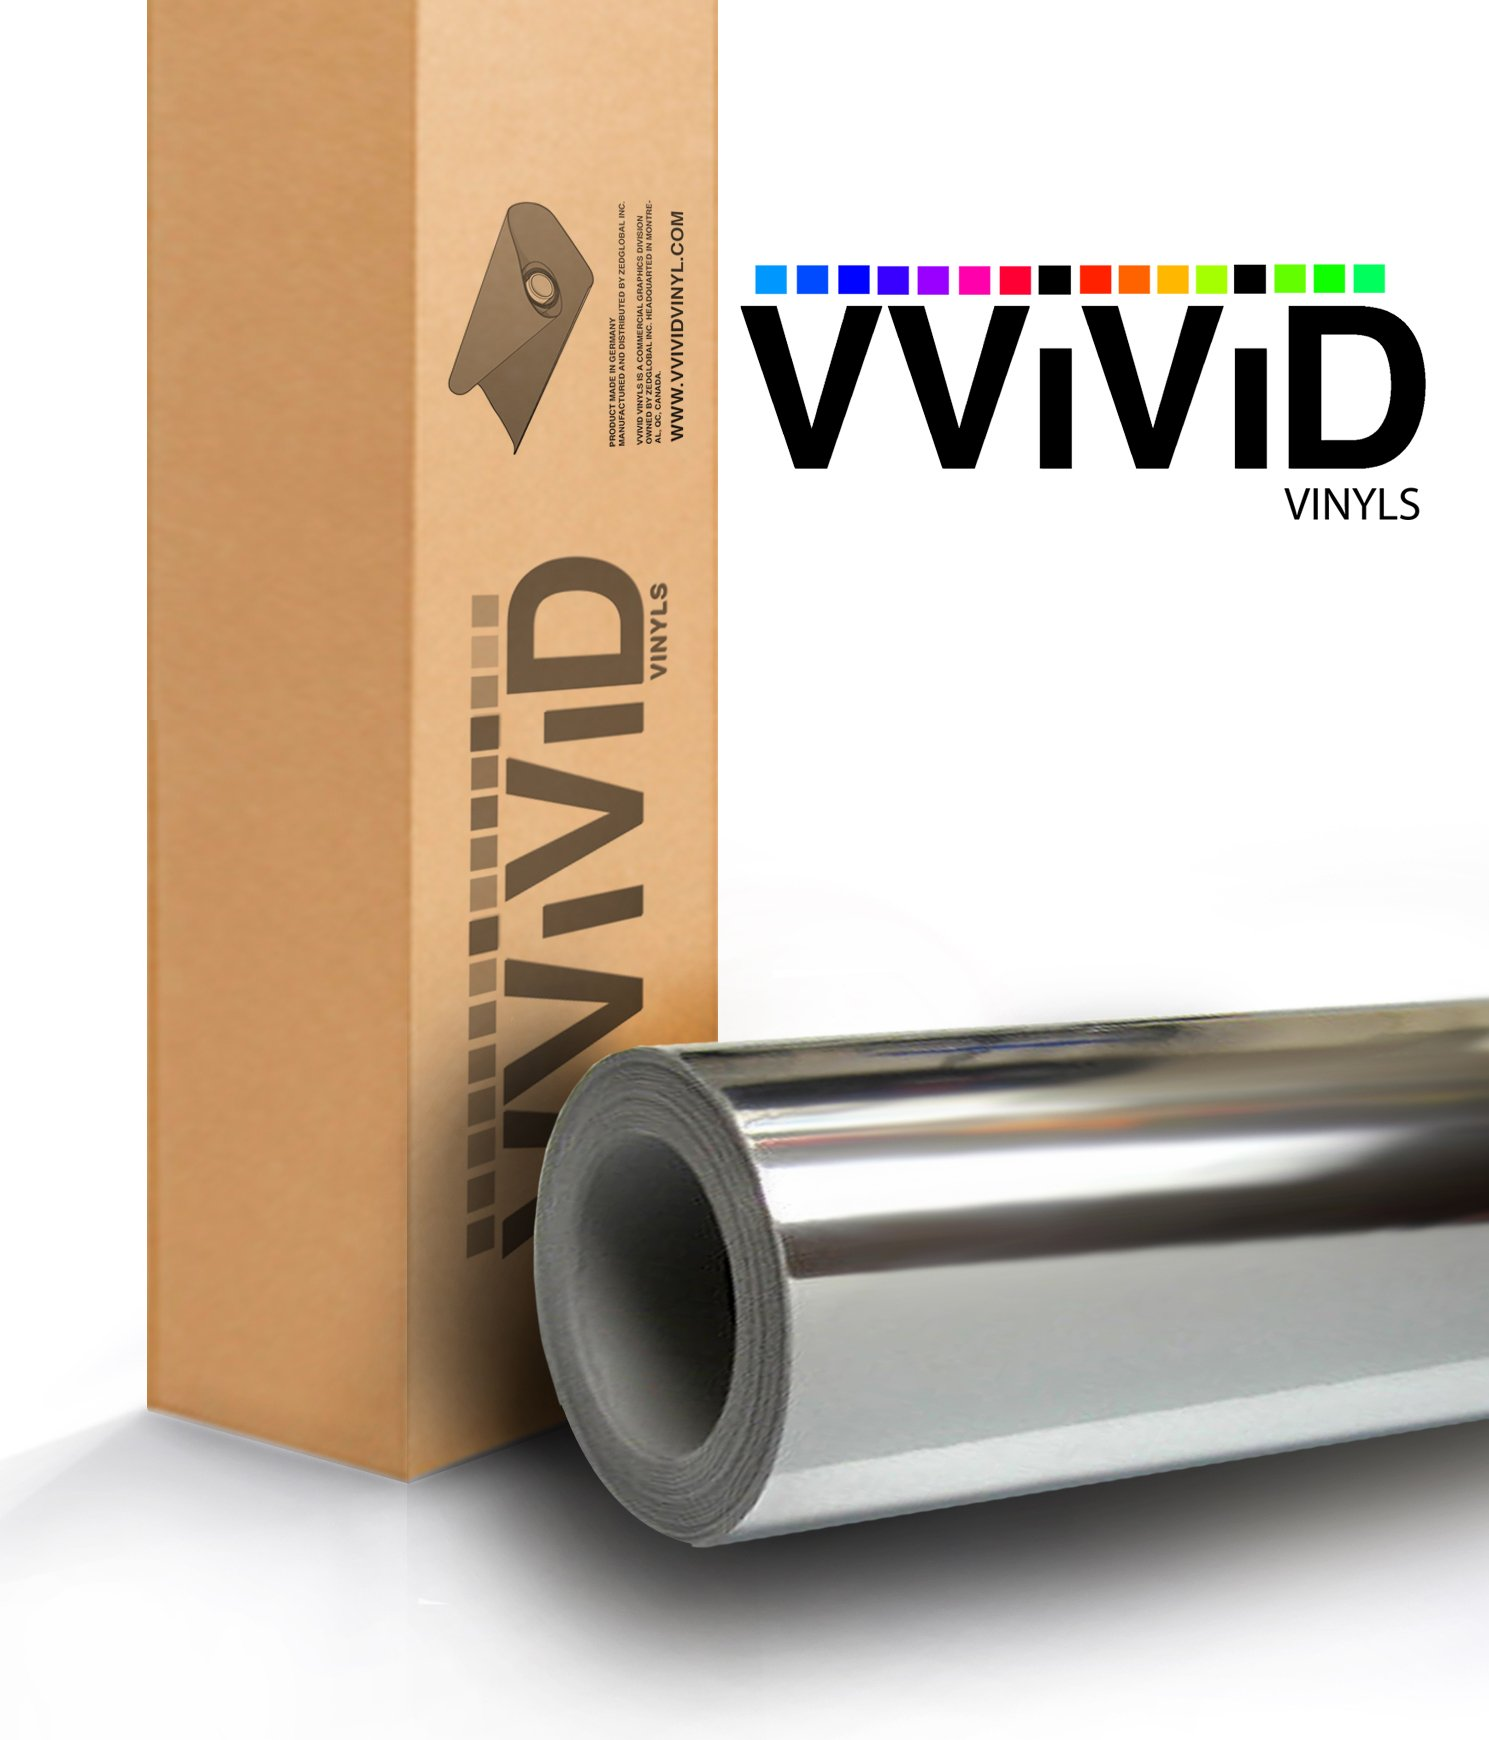 VViViD Gloss Chrome Silver Vinyl Wrap Adhesive Film Roll Air Release DIY Decal Sheet (60 Inch x 60 Inch)